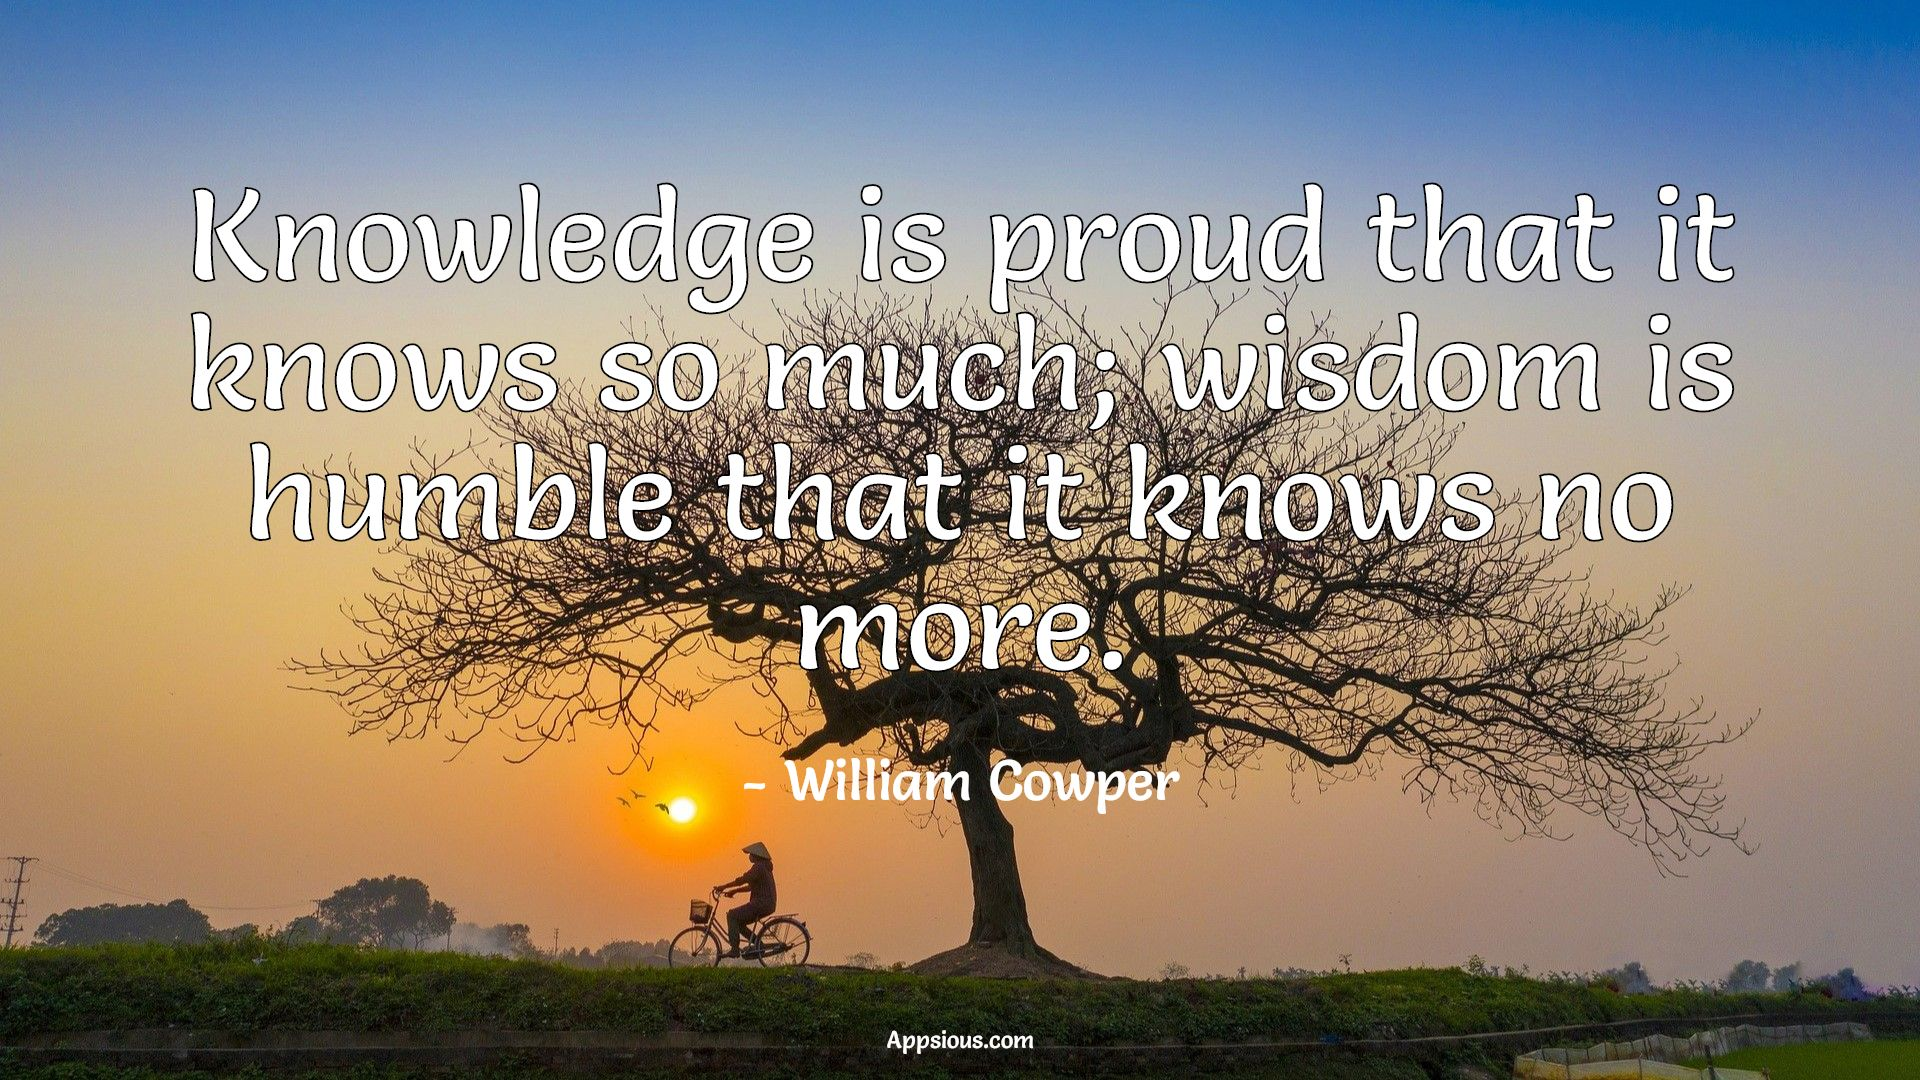 Knowledge is proud that it knows so much; wisdom is humble that it knows no more.